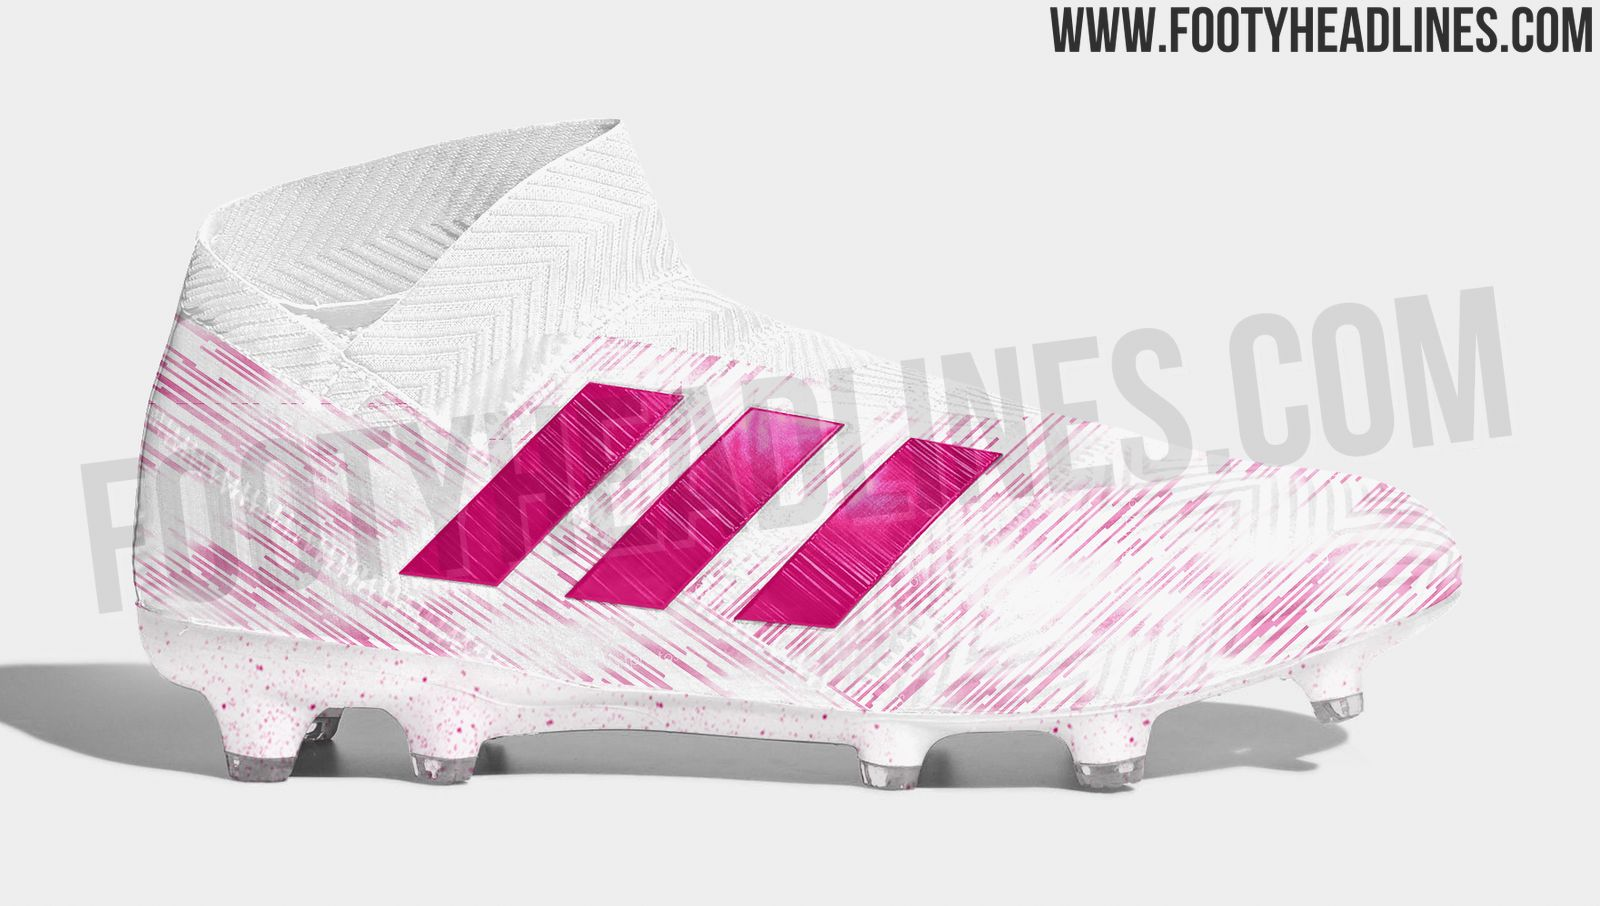 consumo Flexible Facultad  White Adidas 2019 Virtuoso Pack Football Boots Released - Footy Headlines